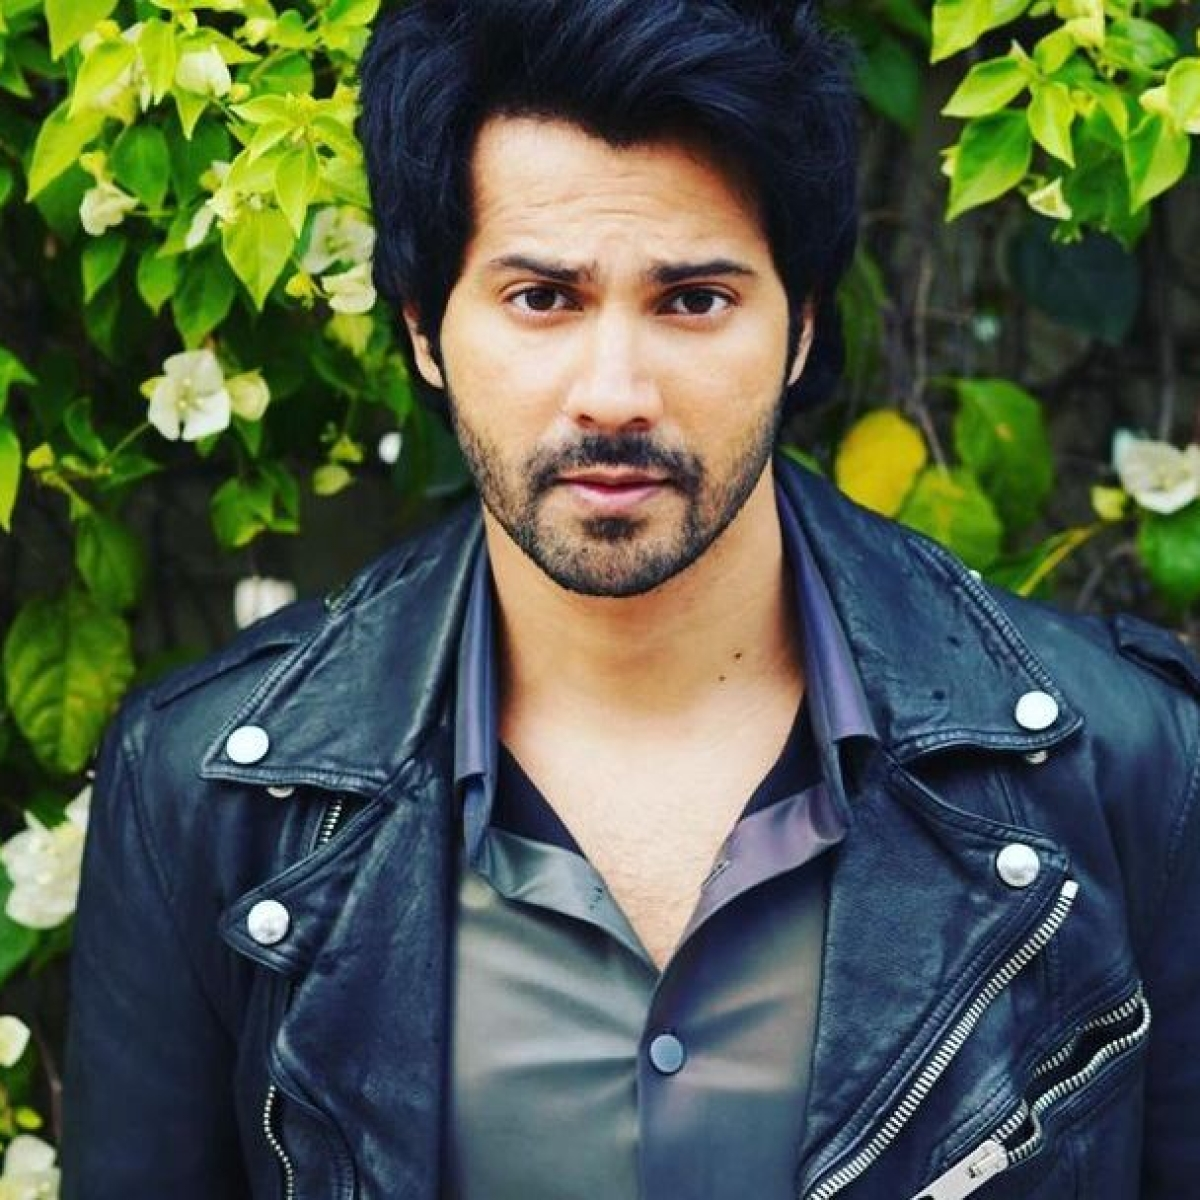 'We didn't fight for land or house, we fought for air': Varun Dhawan pens thought-provoking note amid pandemic